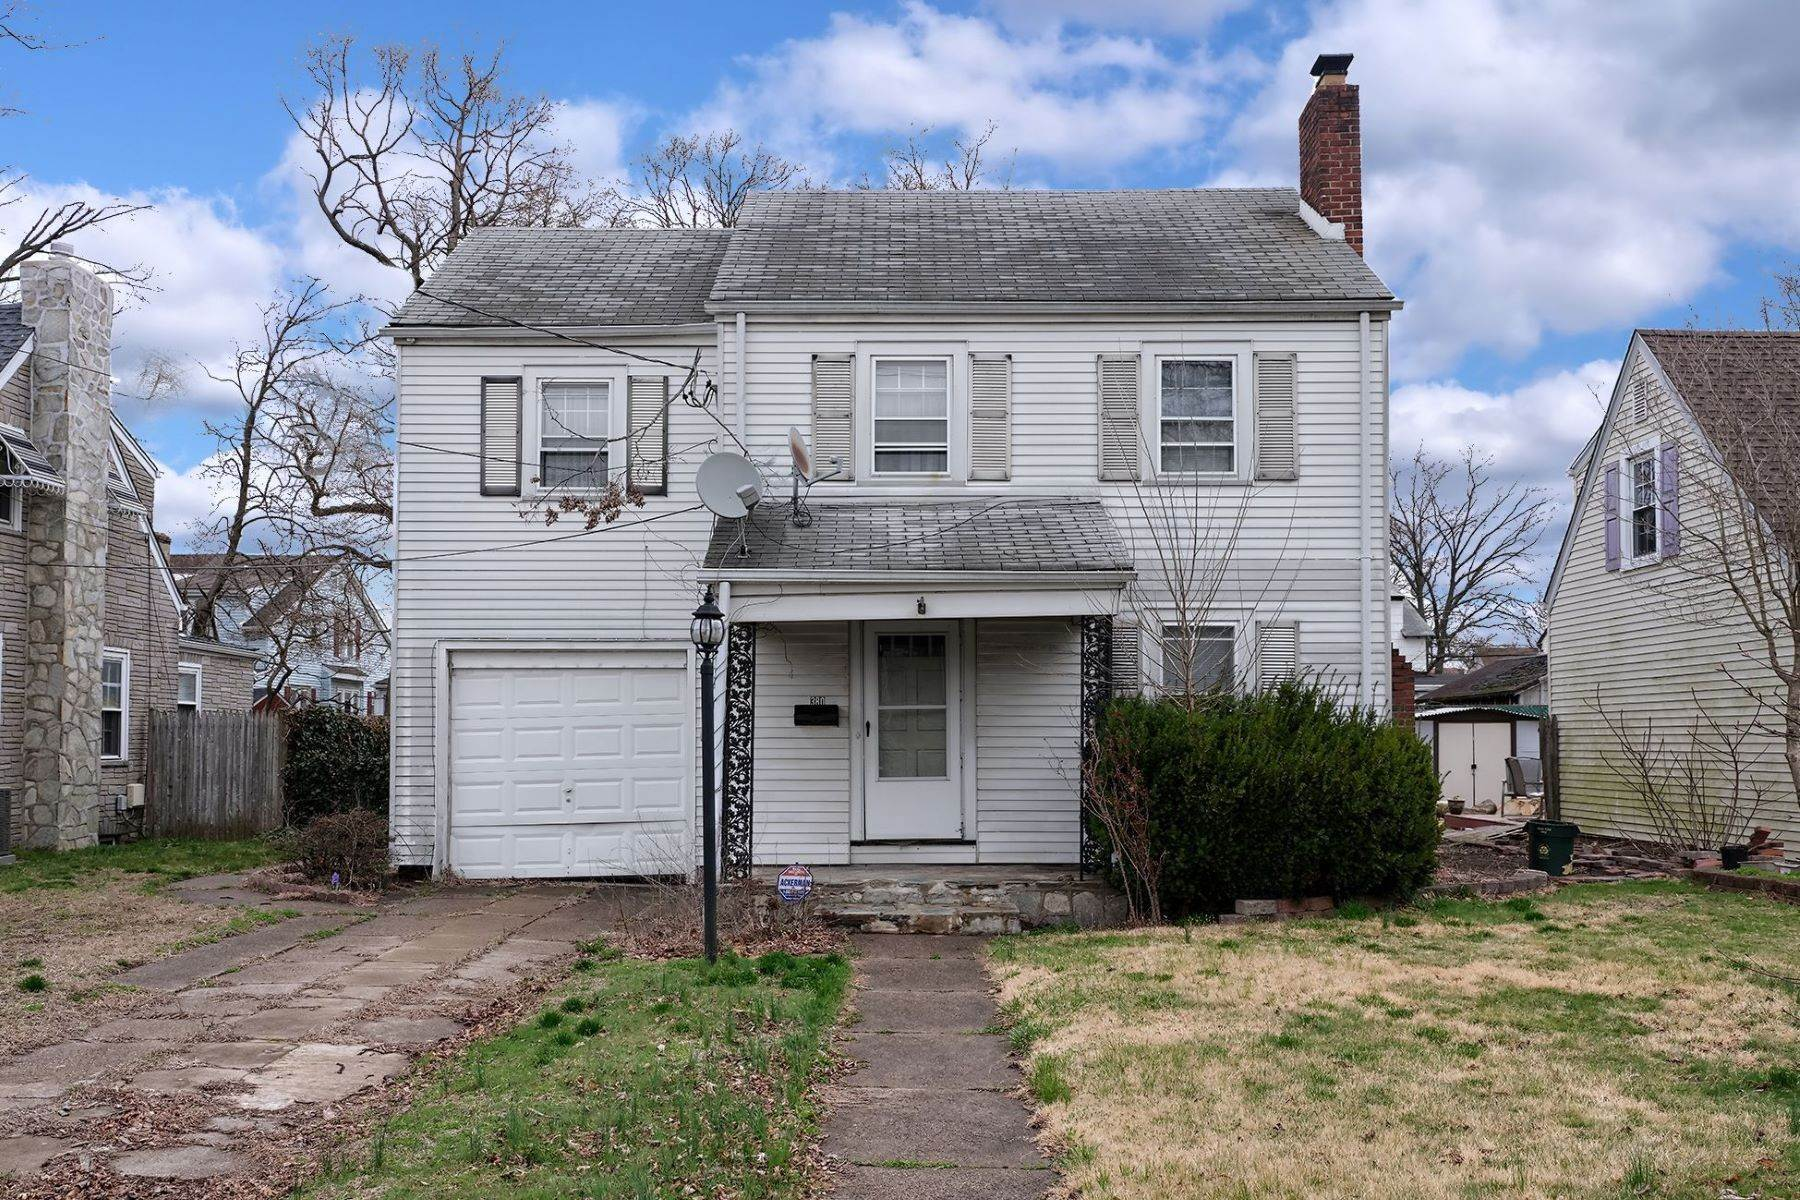 Single Family Homes for Sale at Cute Colonial in a Treasured Neighborhood 380 Atlantic Avenue Trenton, New Jersey 08629 United States